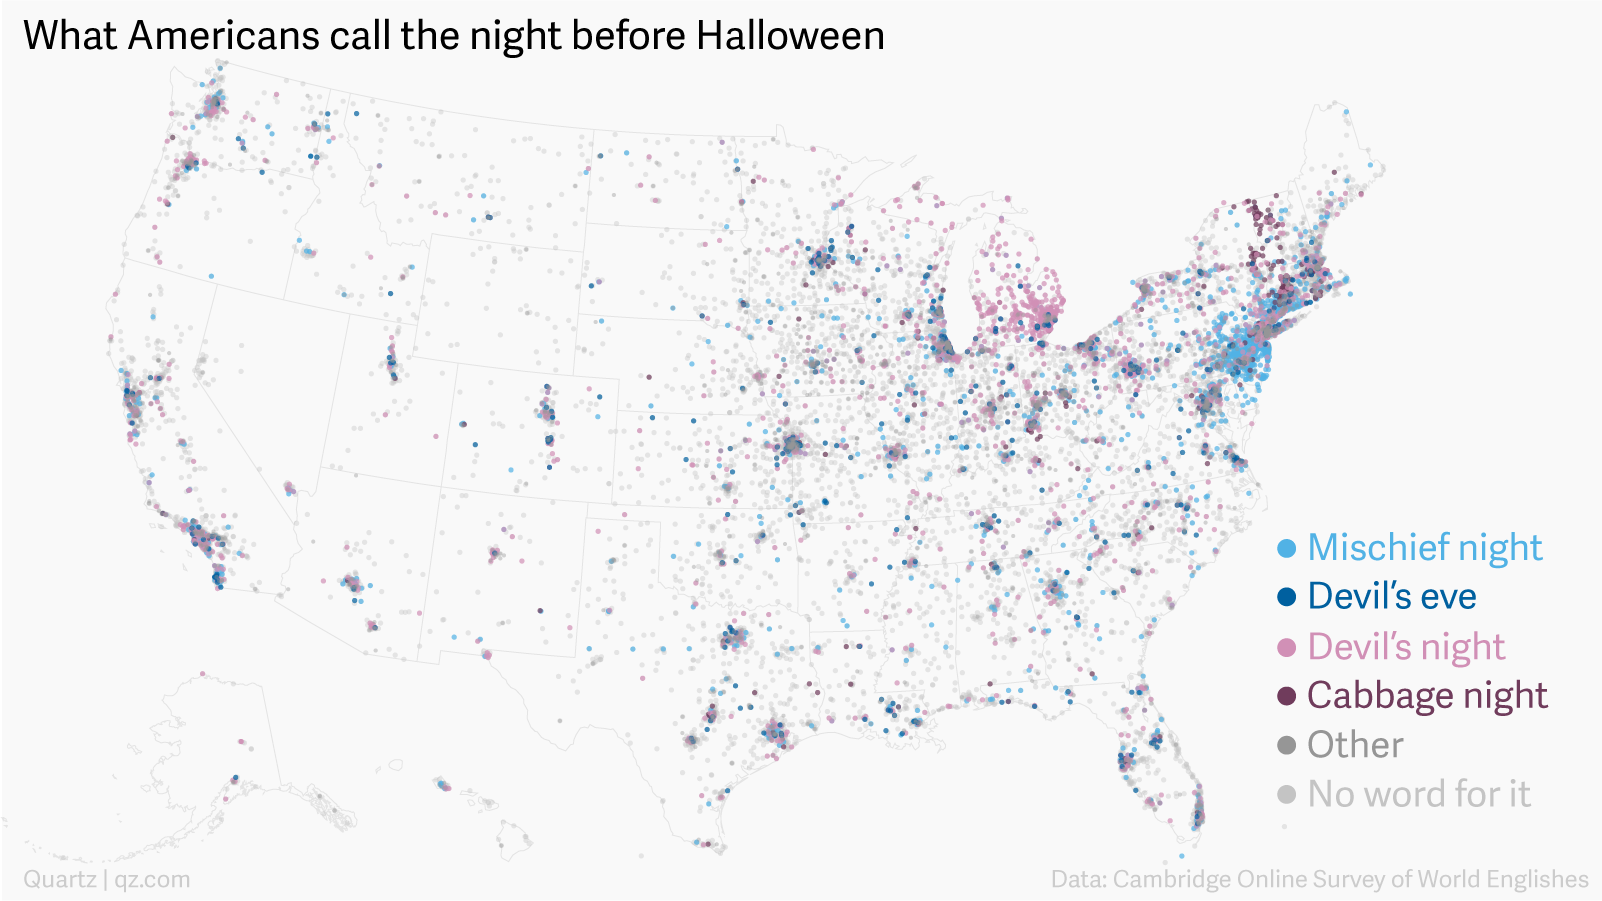 this map shows the weird names americans have given the night before